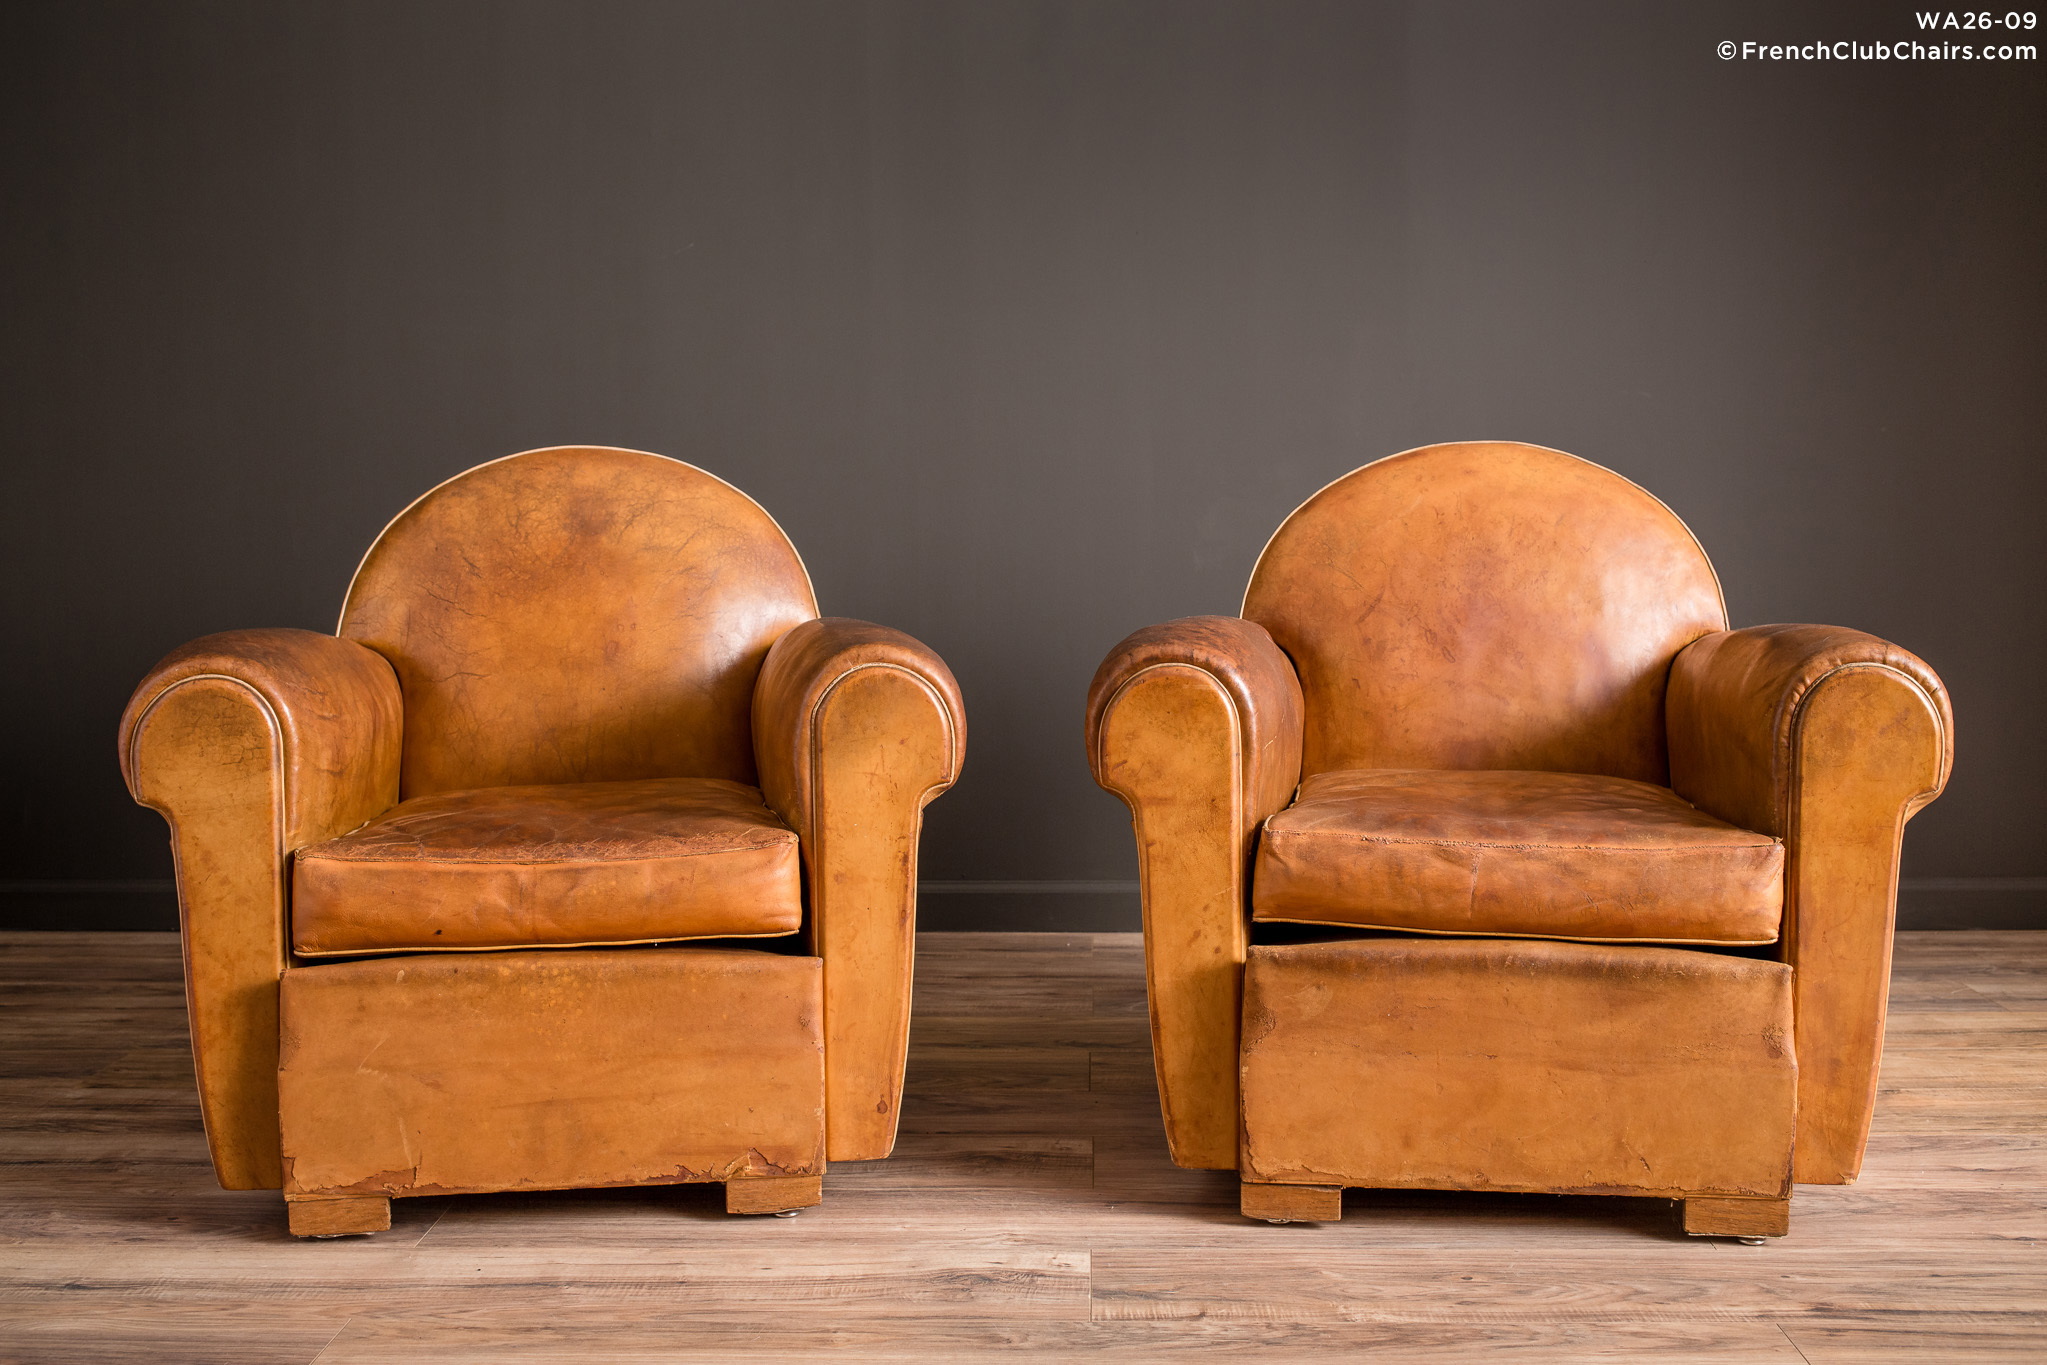 WA_26-09_Bern_Cinema_Clair_pair_R_1TQ-v01-williams-antiks-leather-french-club-chair-wa_fcccom